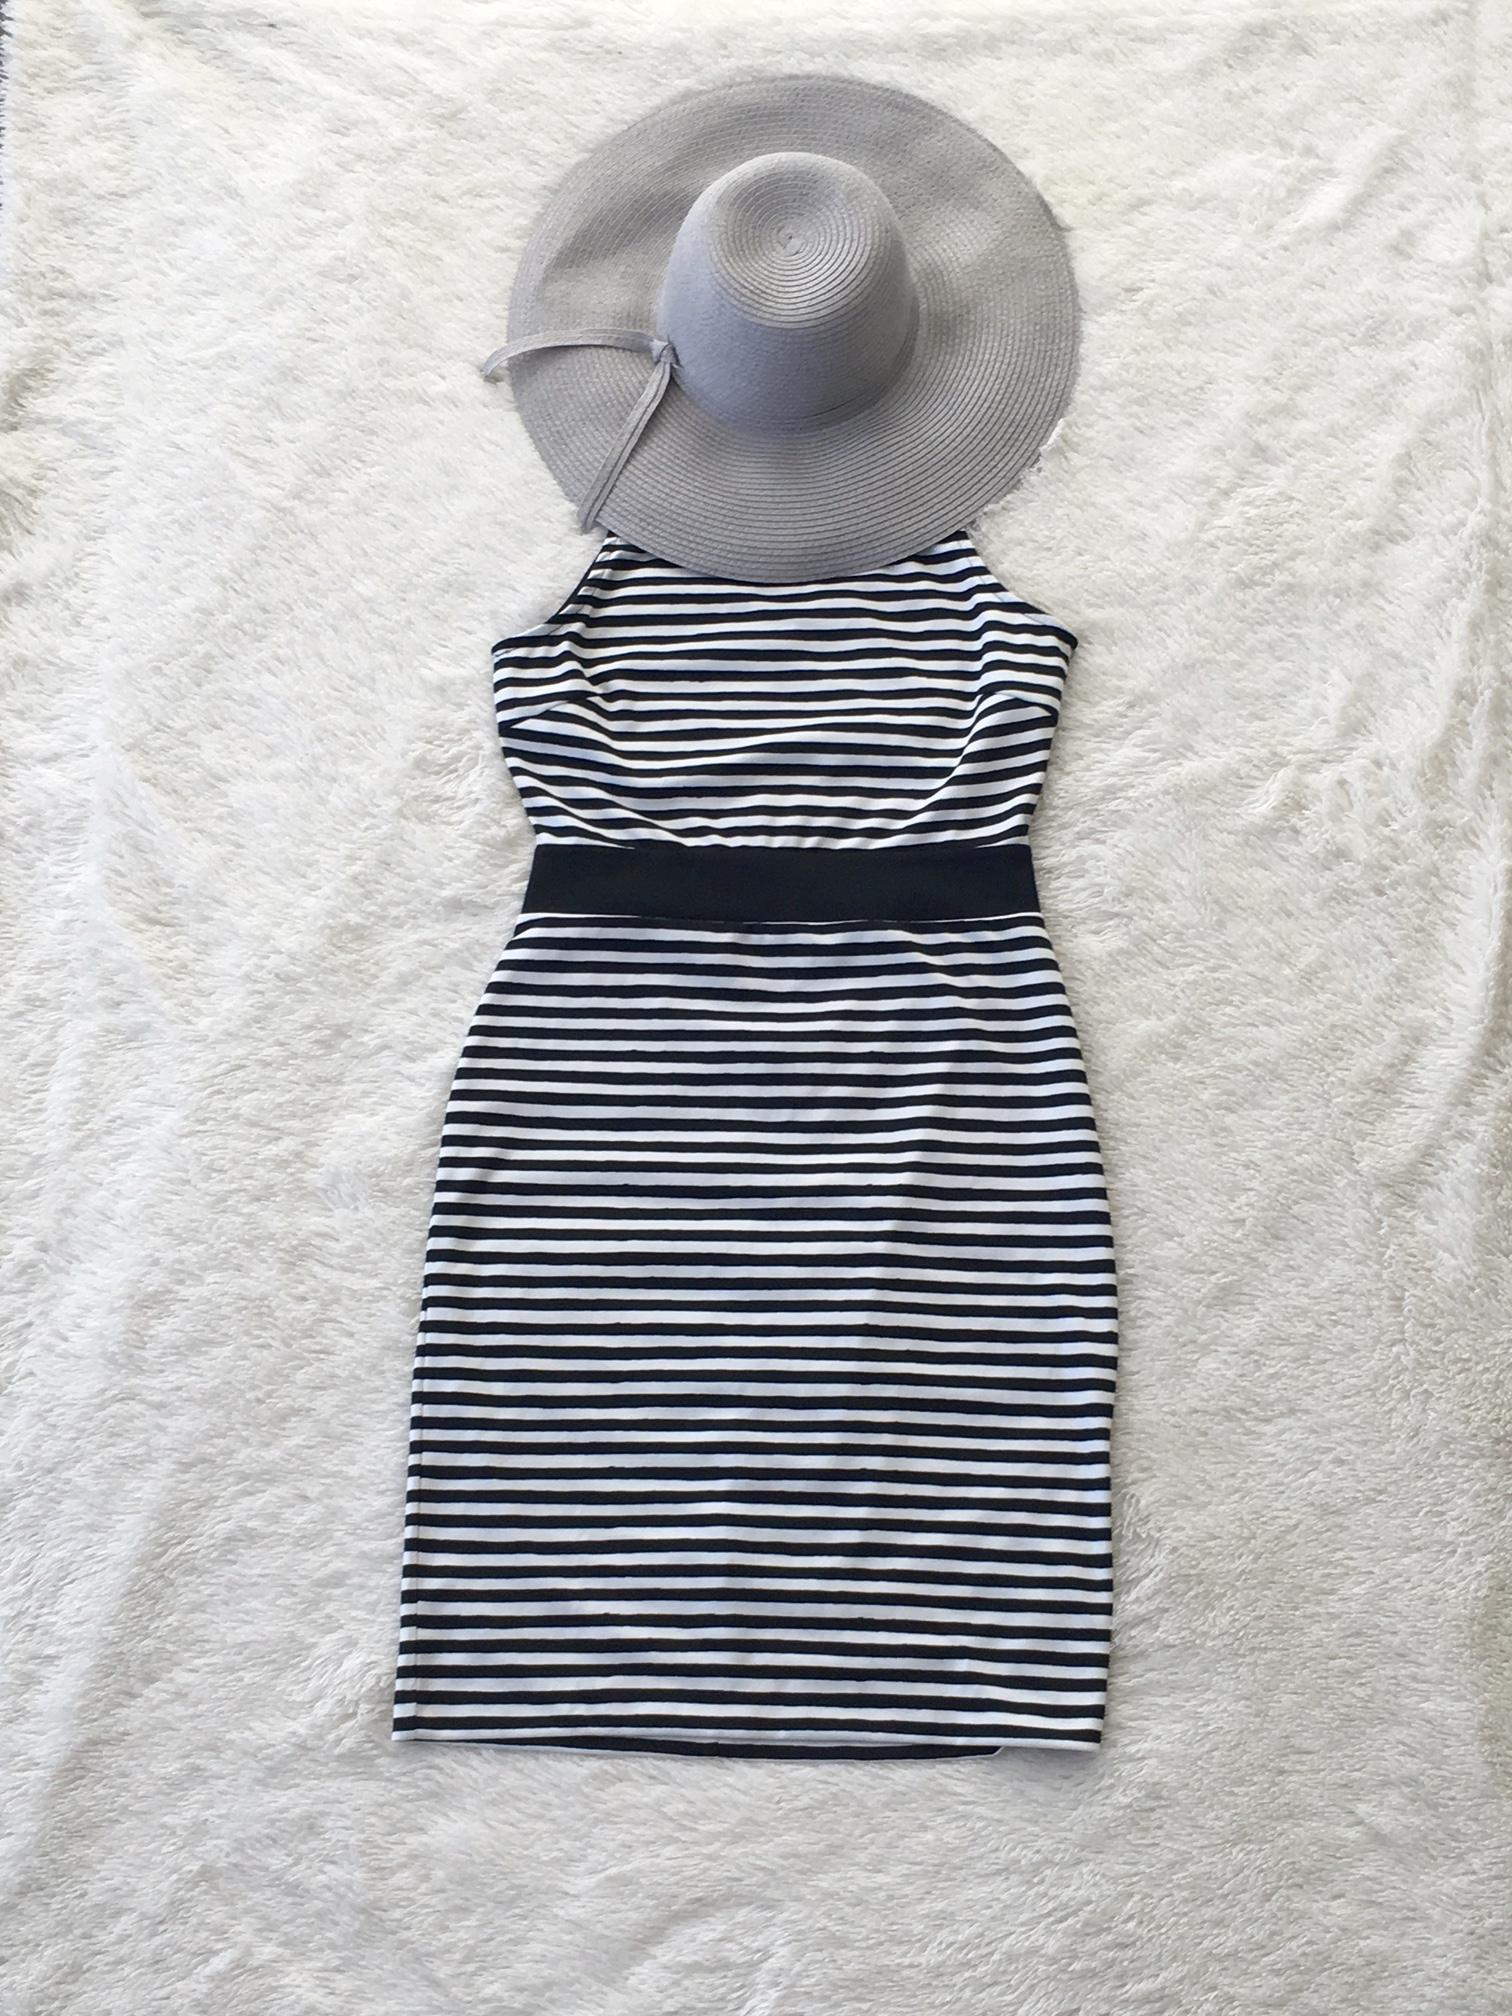 Striped dress and sunhat